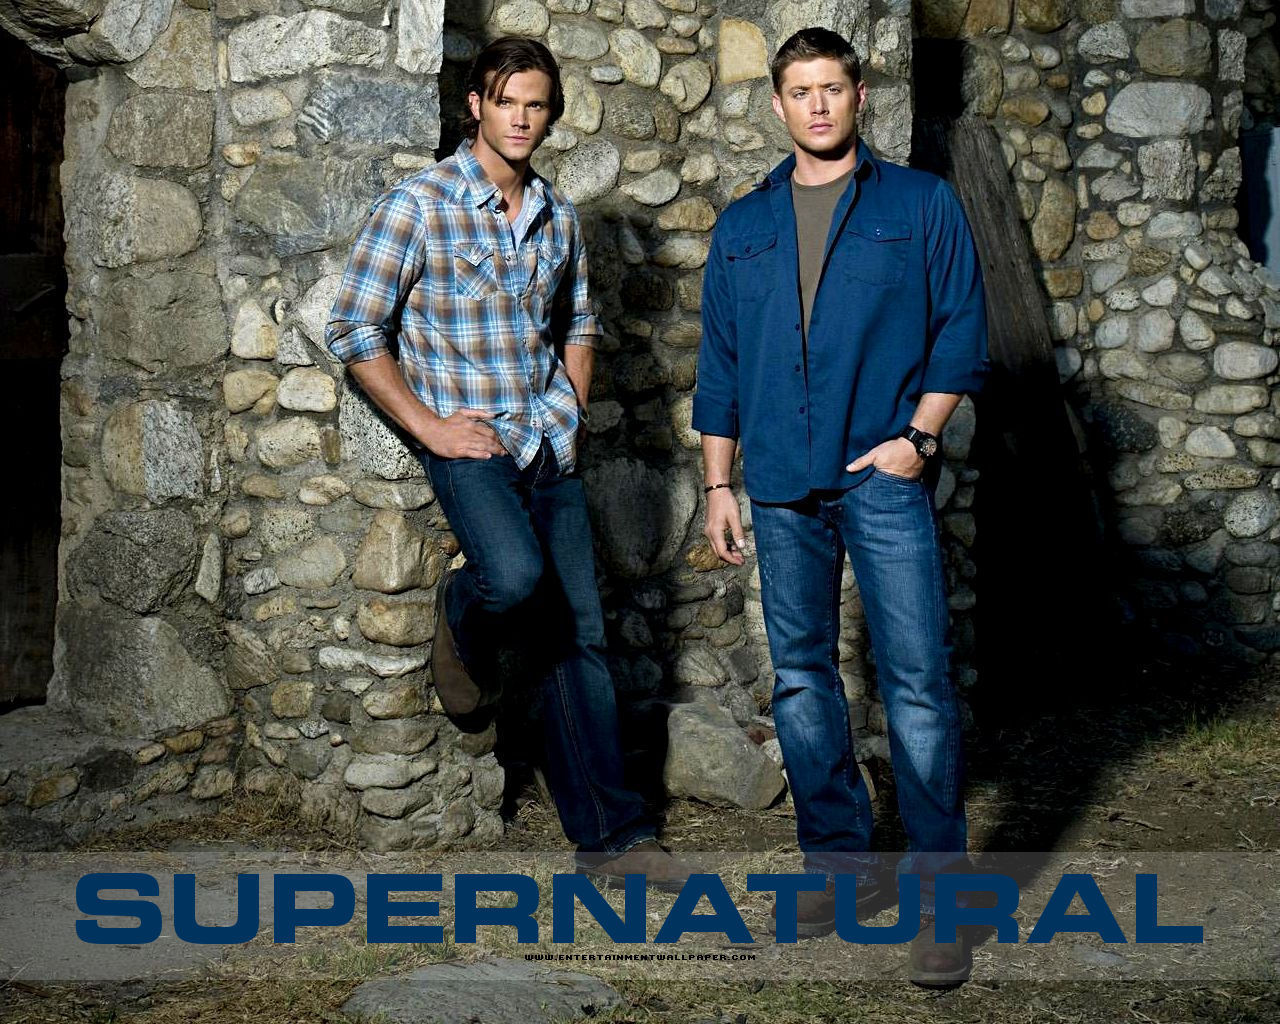 Girls, which one would you choose from Supernatural: Sam ...